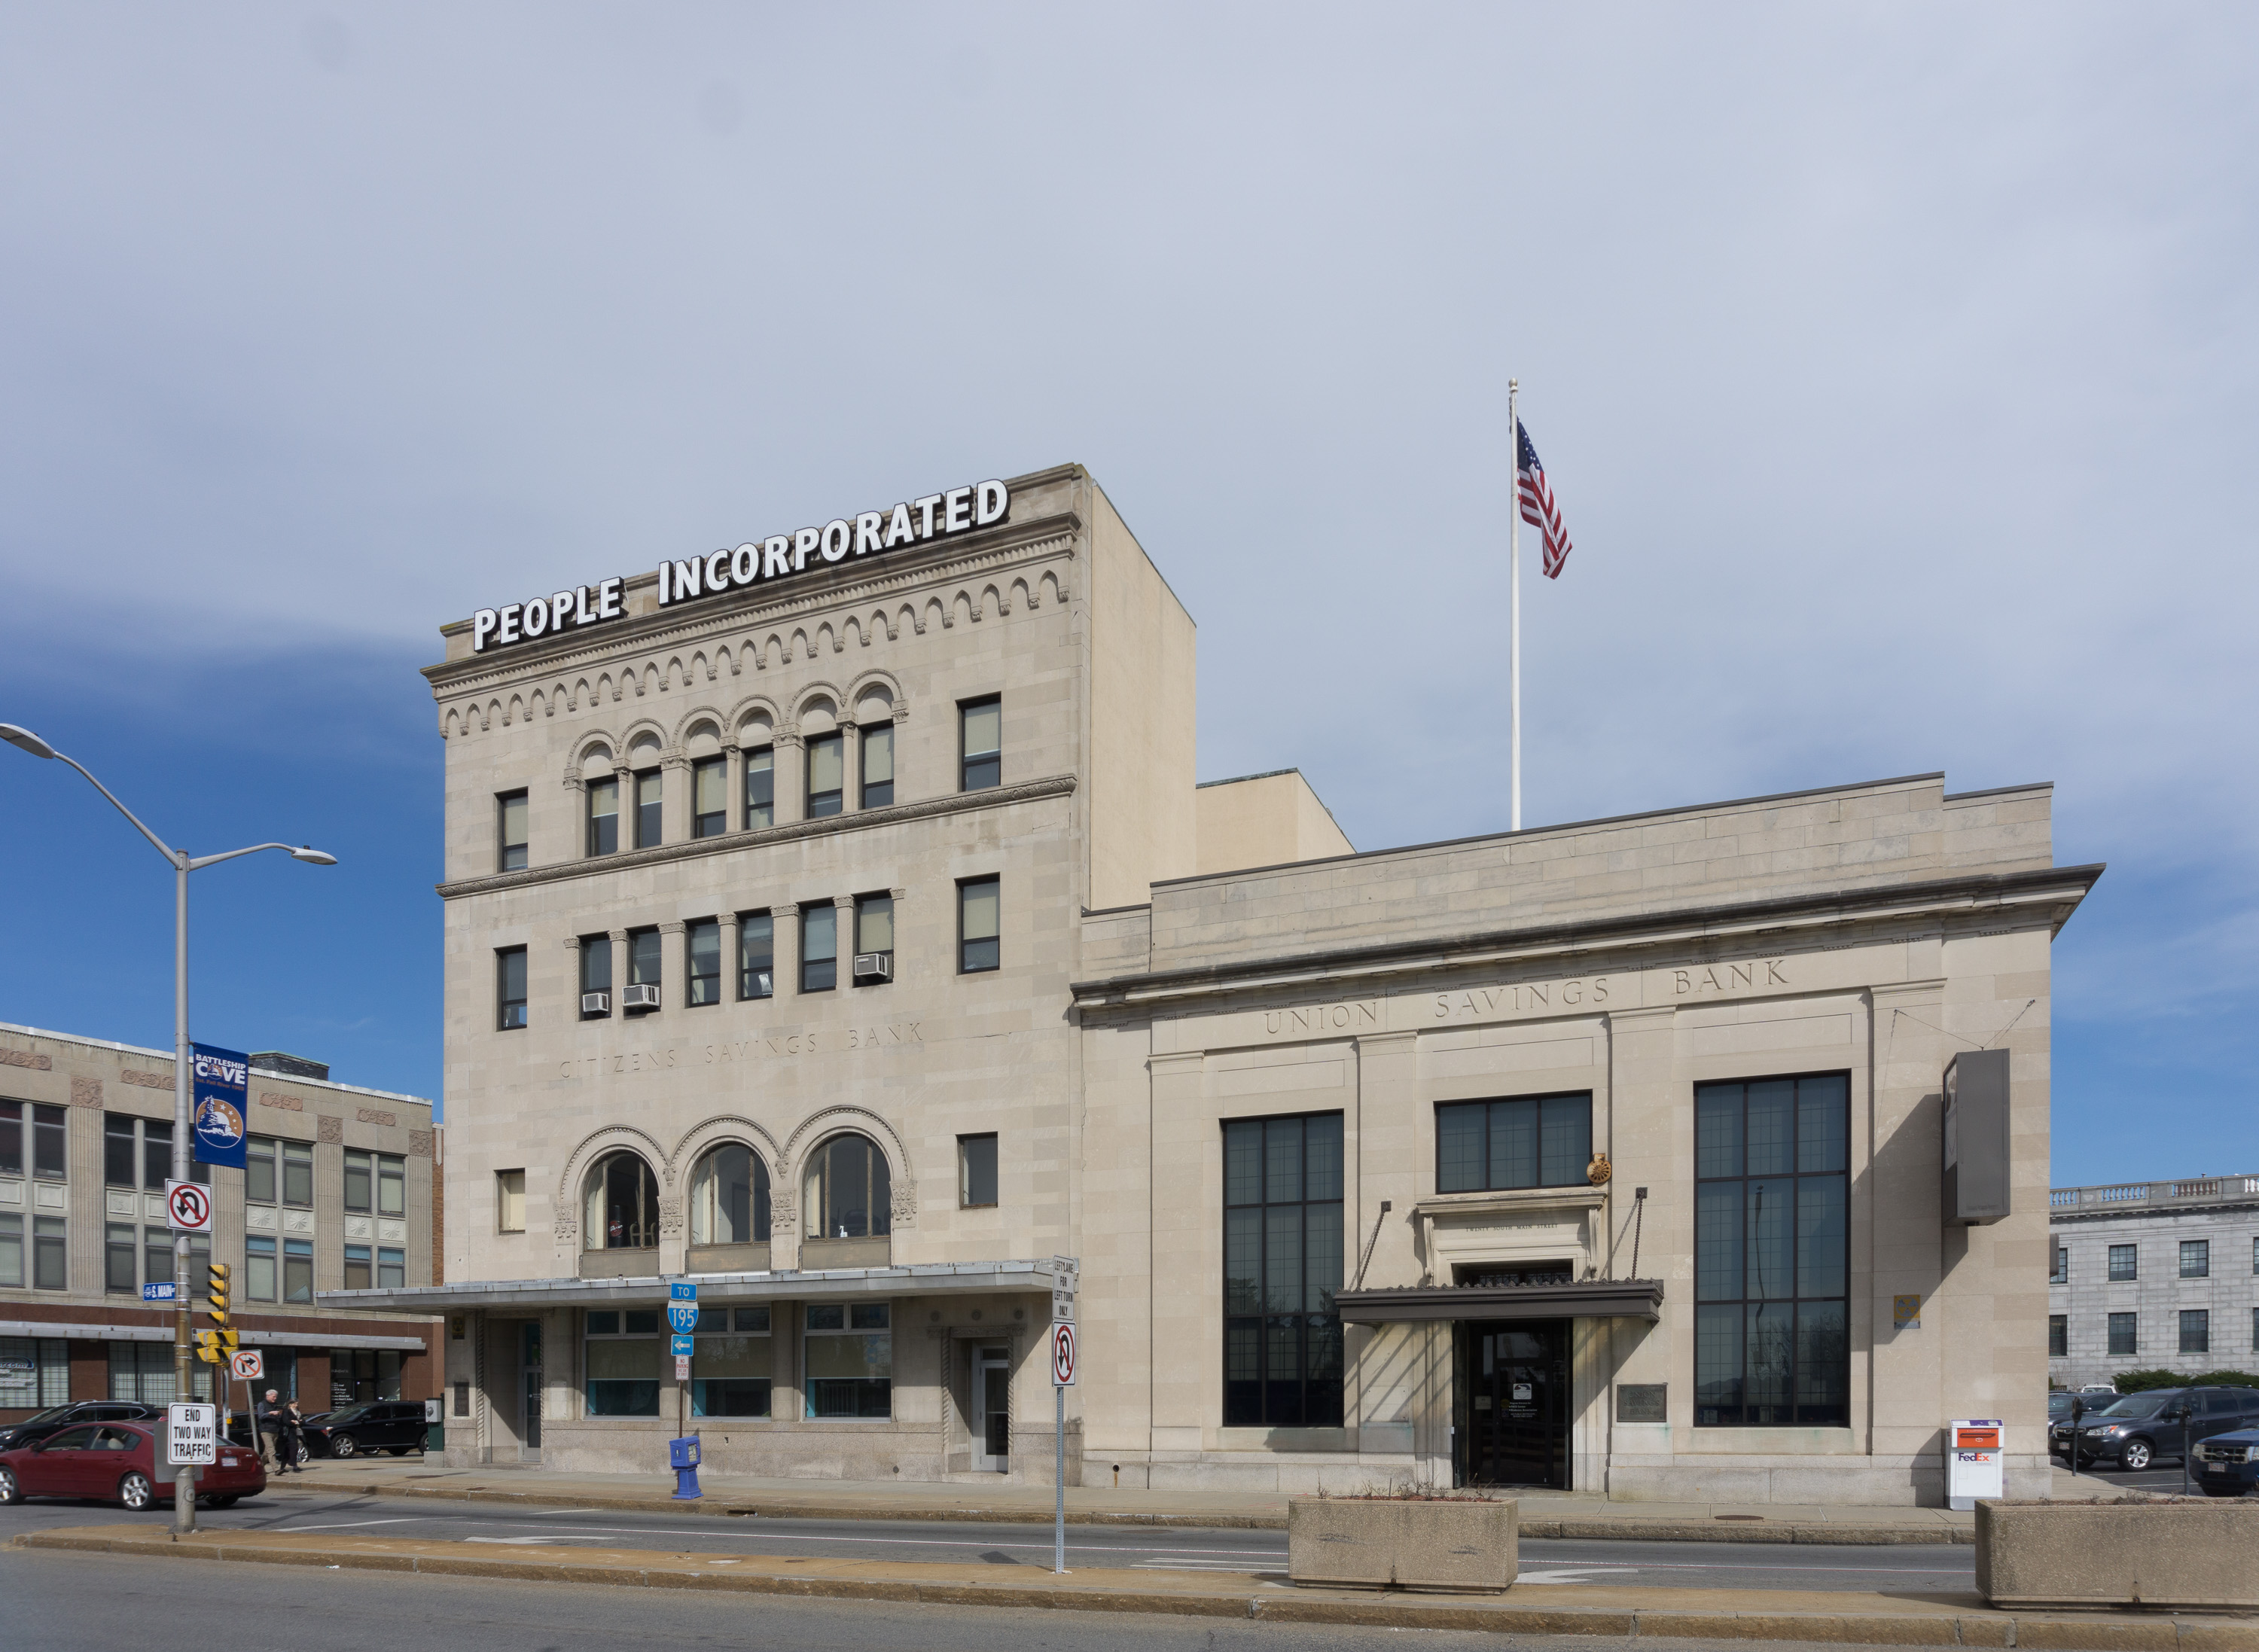 File:Citizens Savings Bank - Union Savings Bank Fall River